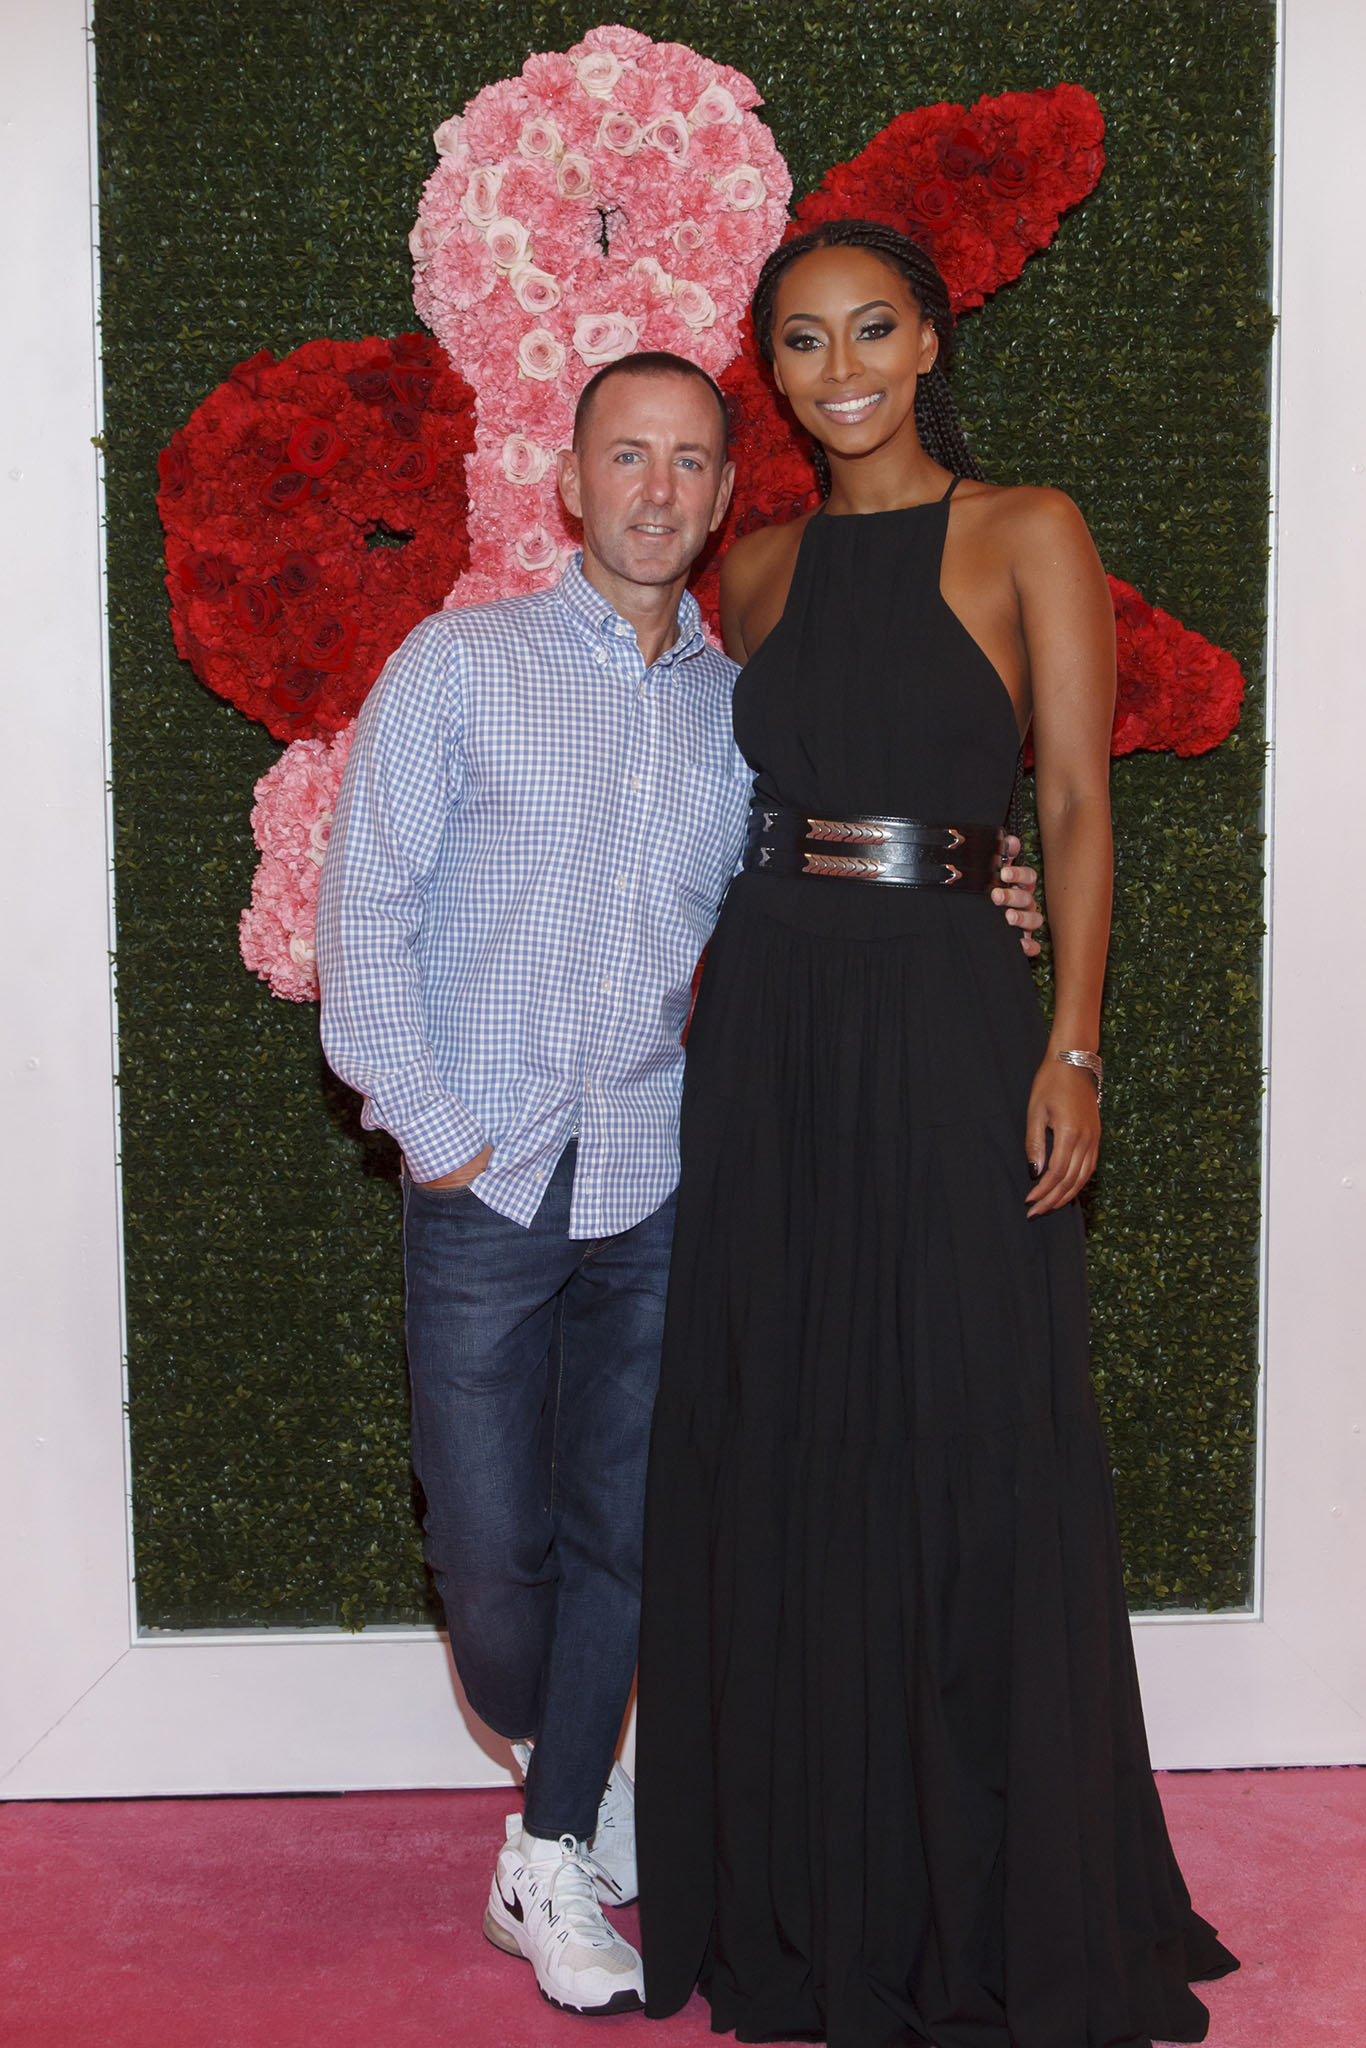 Jeffrey Kalinsky and Keri Wilson at the Jeffrey Fashion Cares Charity show, 2015.